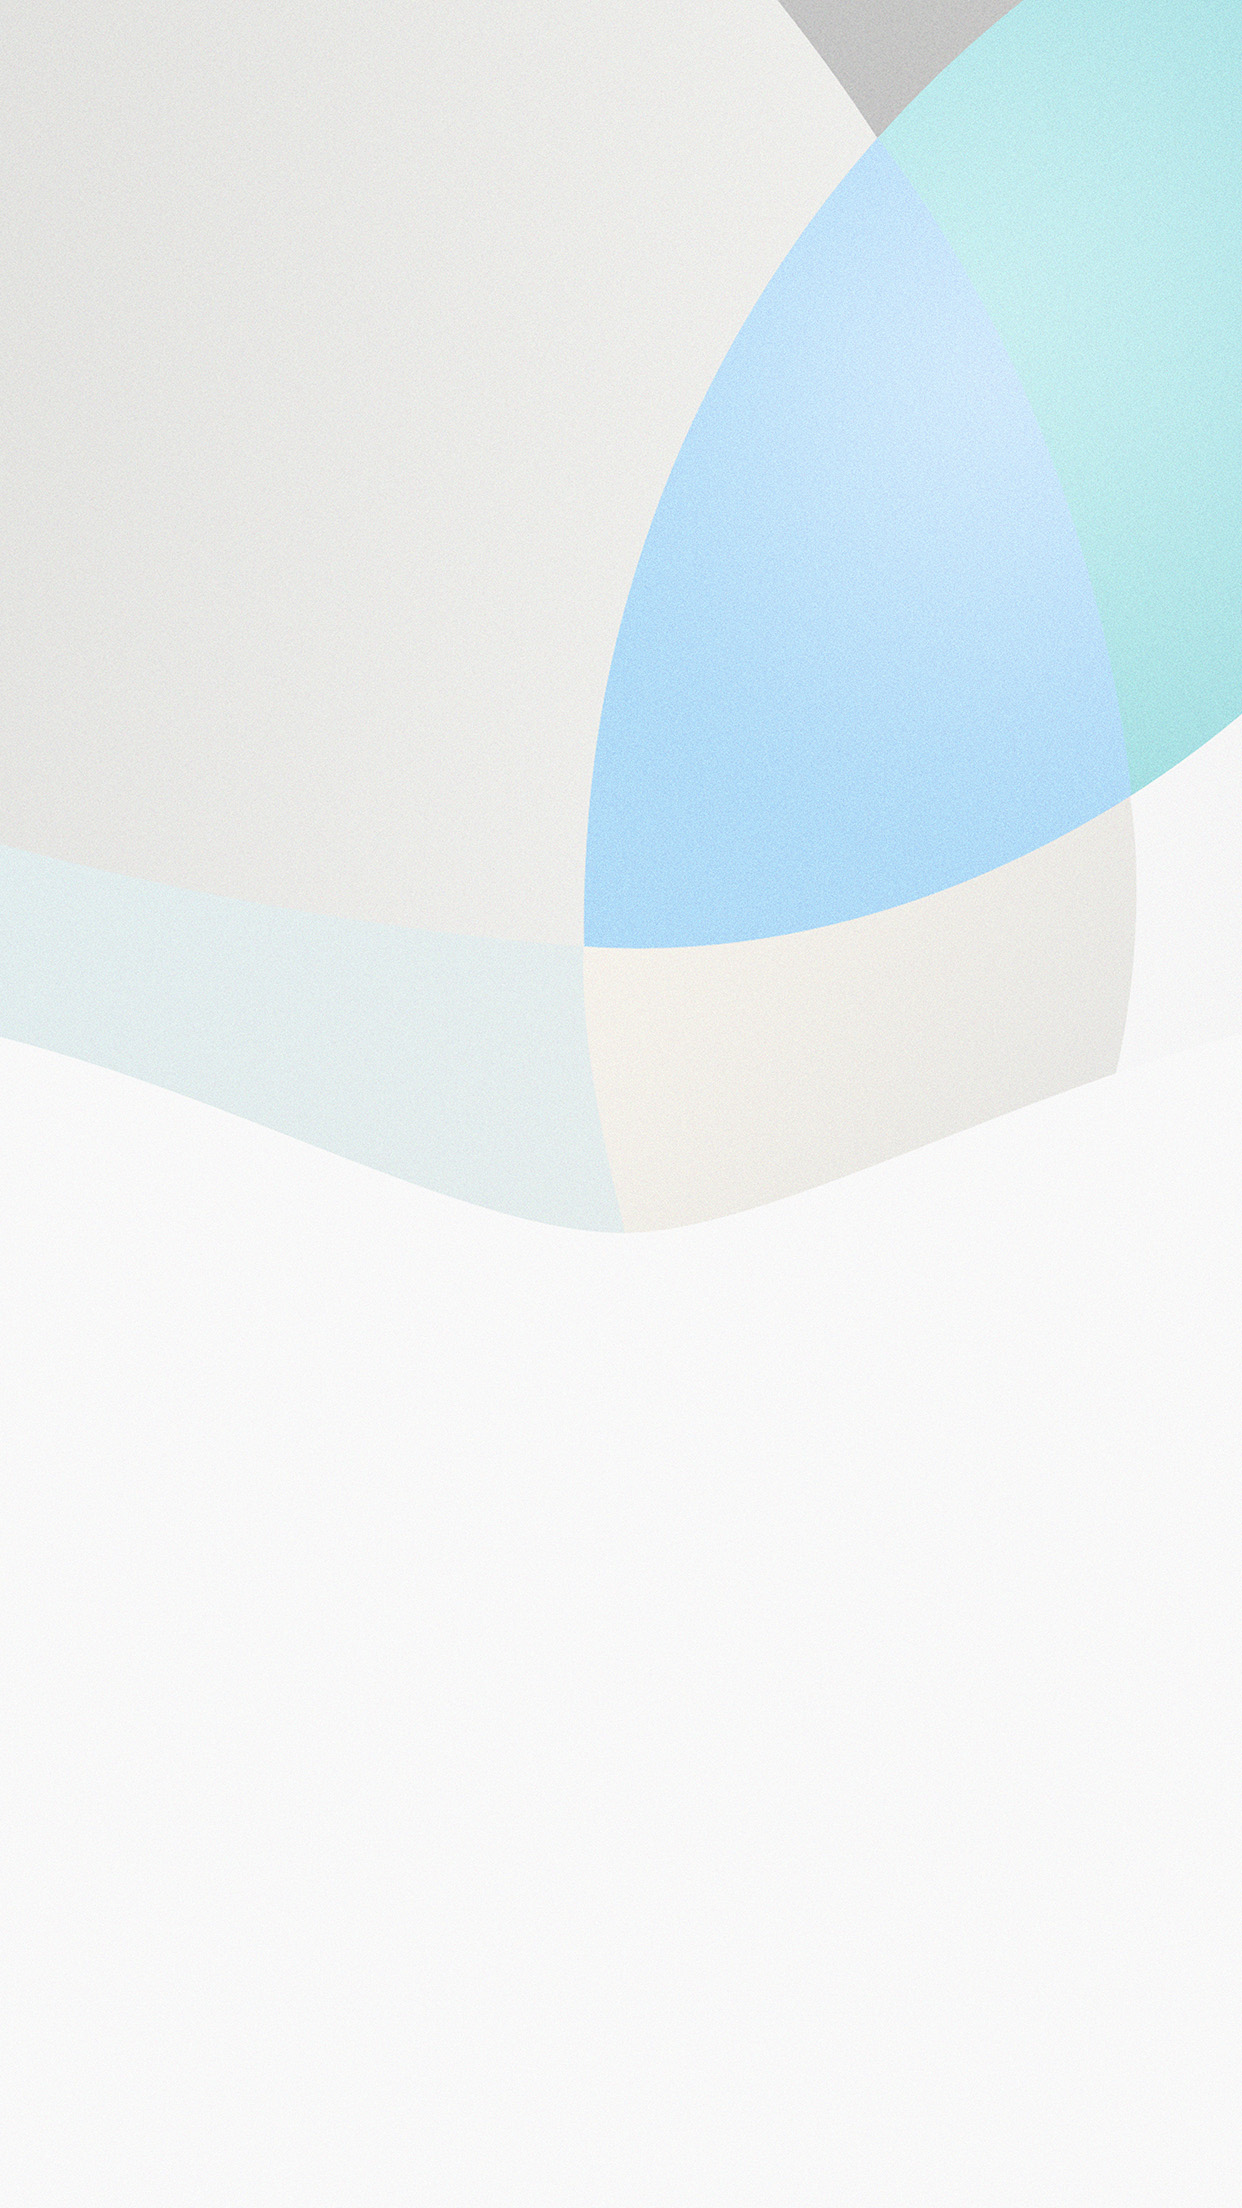 For iphone x iphonexpapers for Minimal art logo